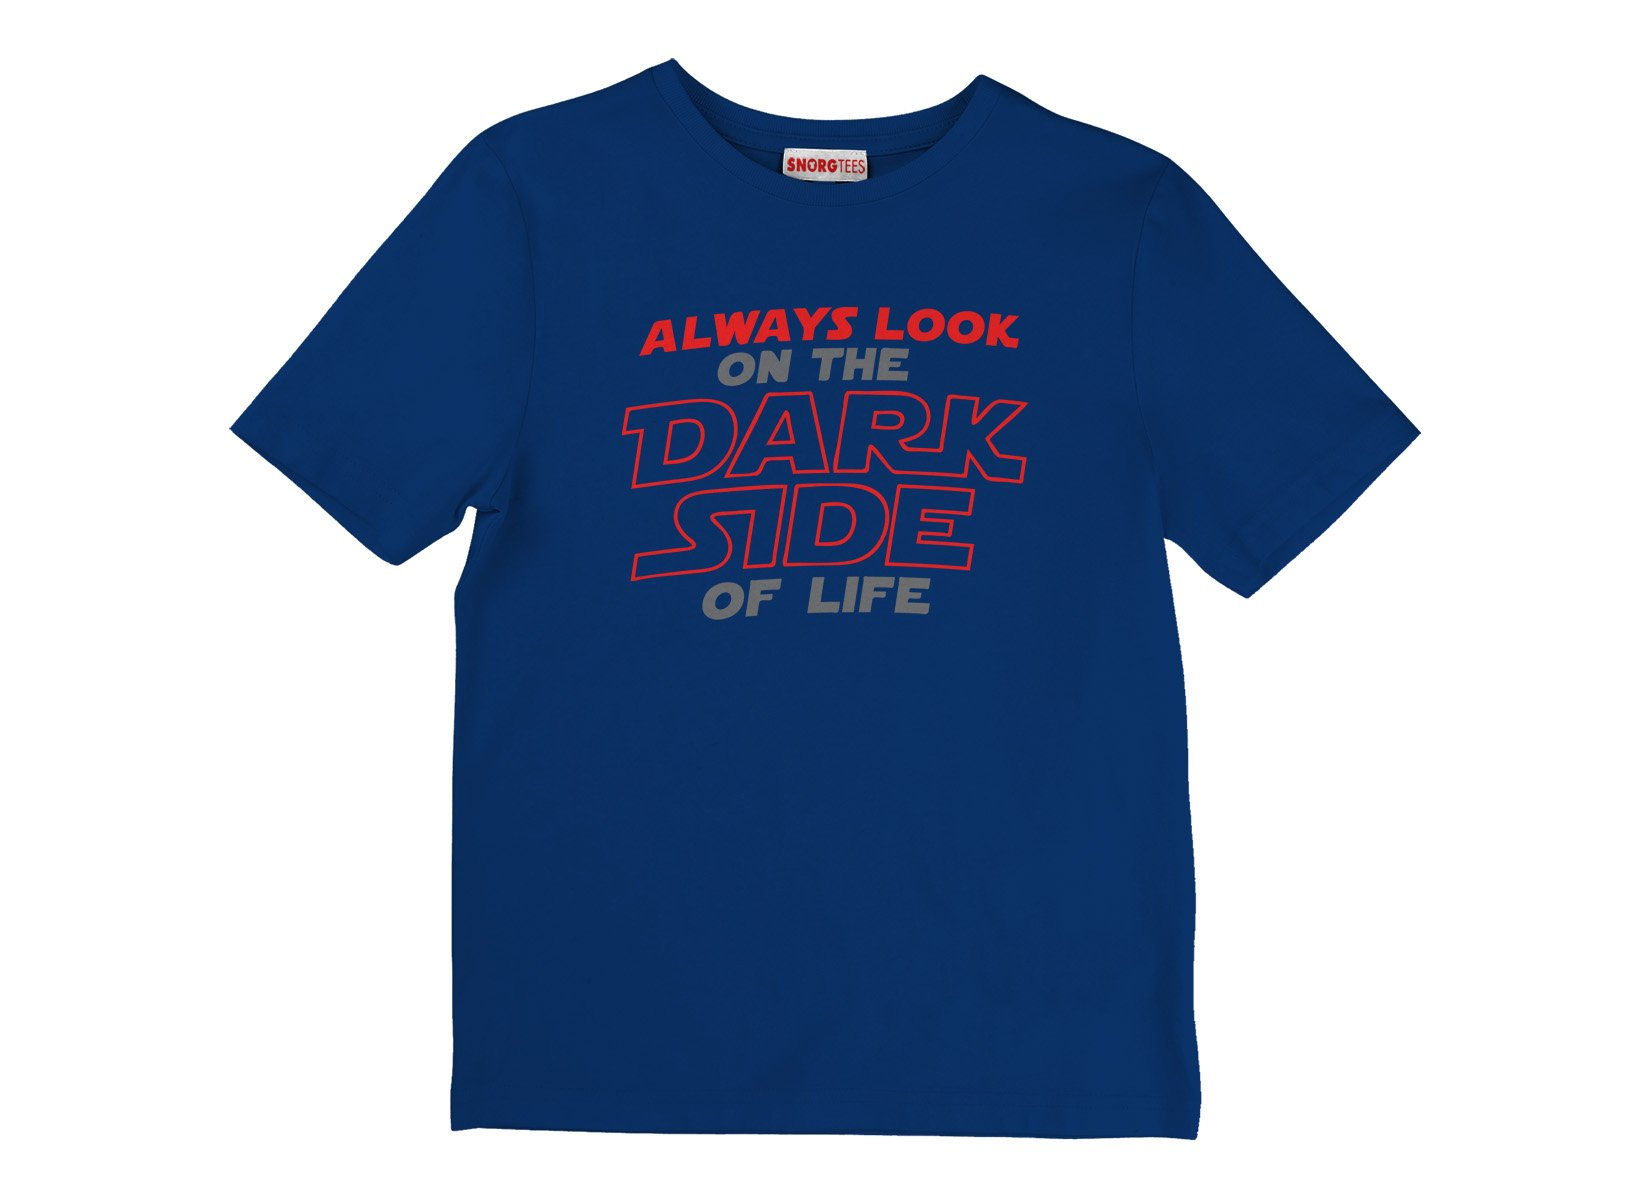 Always Look On The Dark Side Of Life on Kids T-Shirt